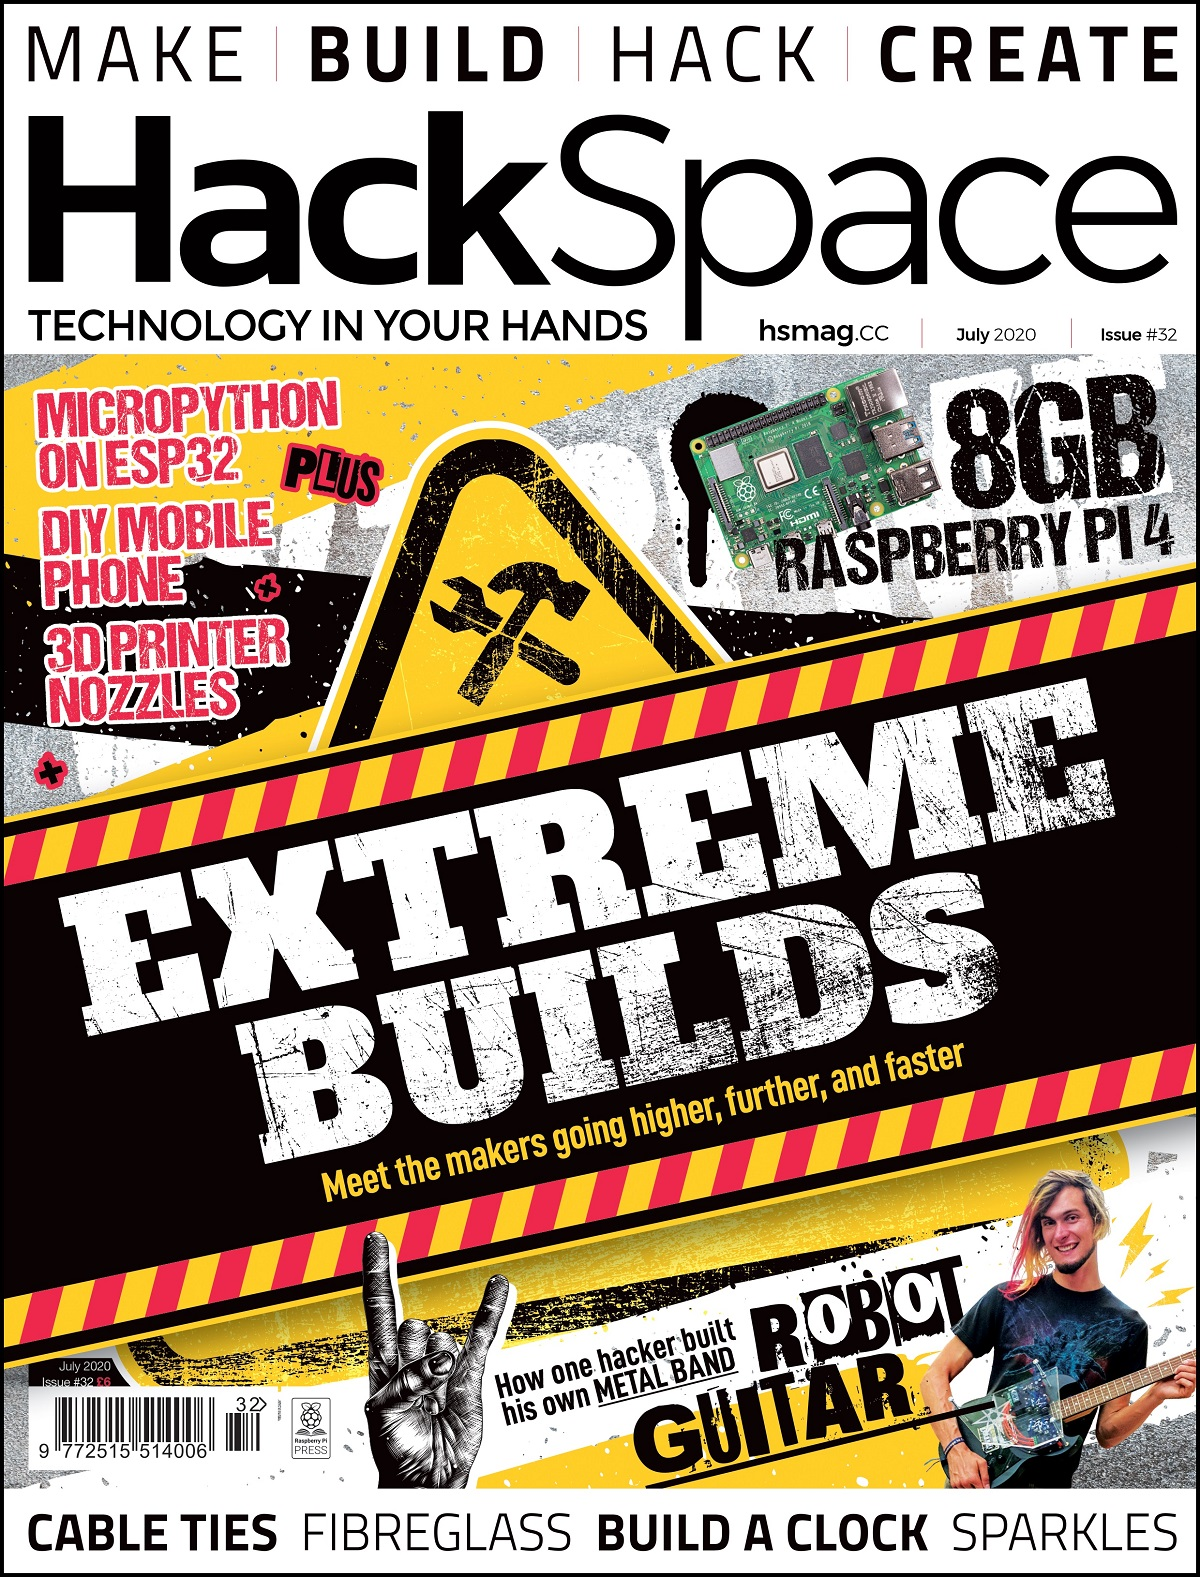 HackSpace magazine issue 32 cover